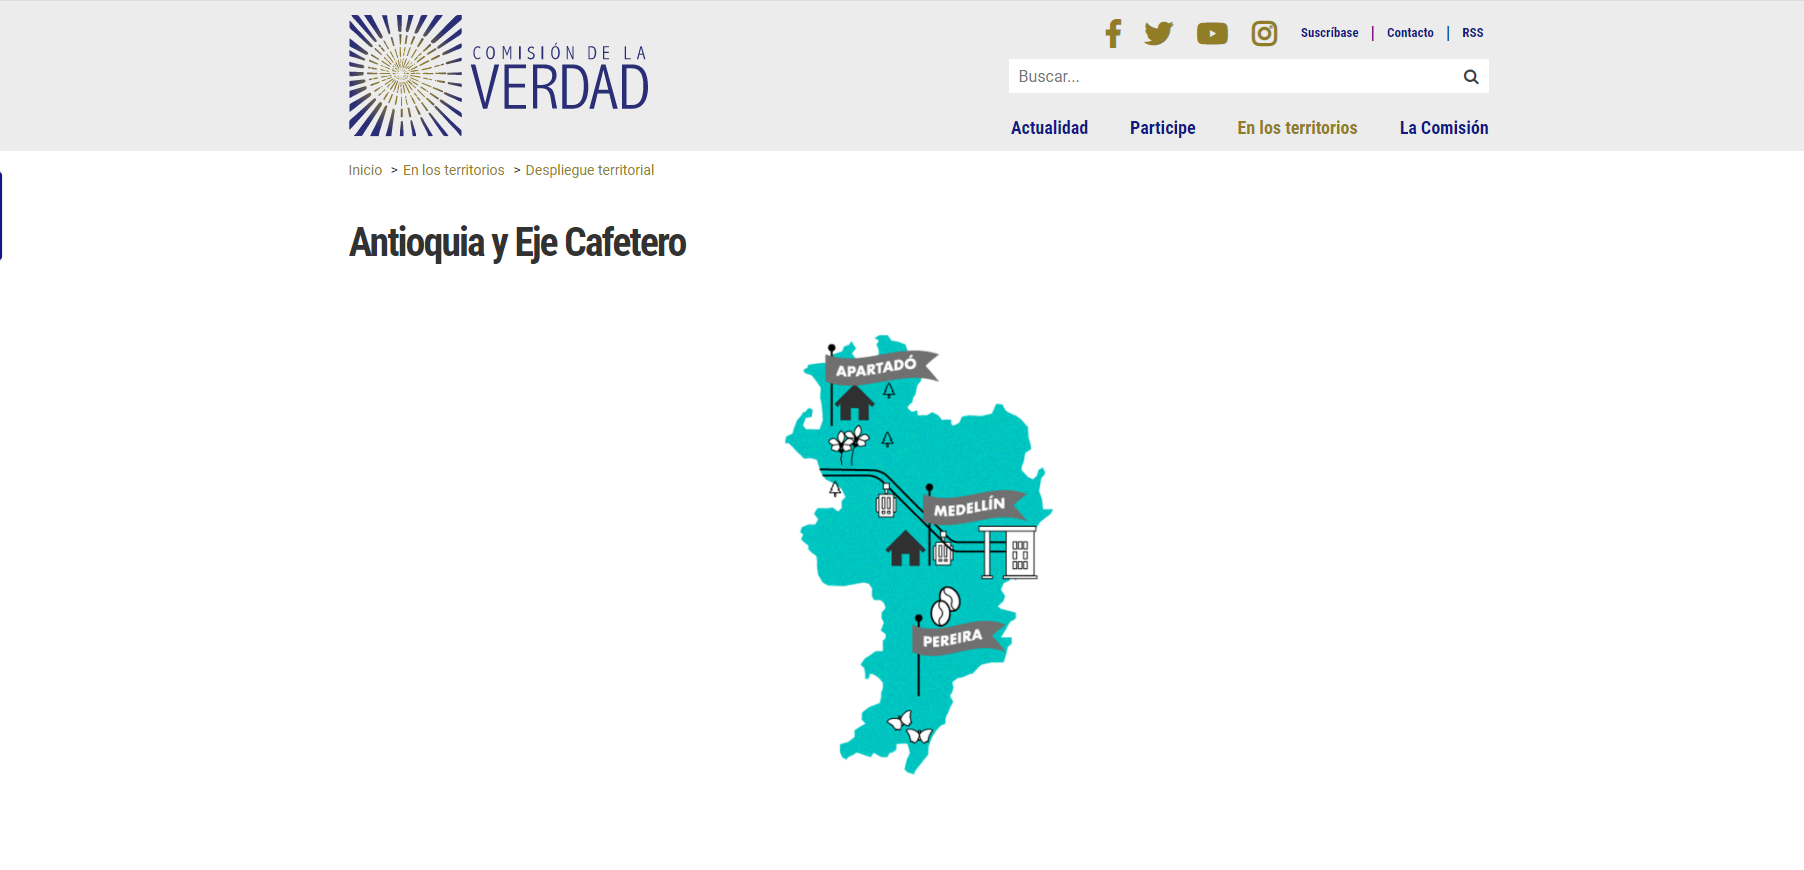 Art and Documentary Photography - Loading Comisi__n_de_la_Verdad_Antioquia_y_eje_cafetero.png